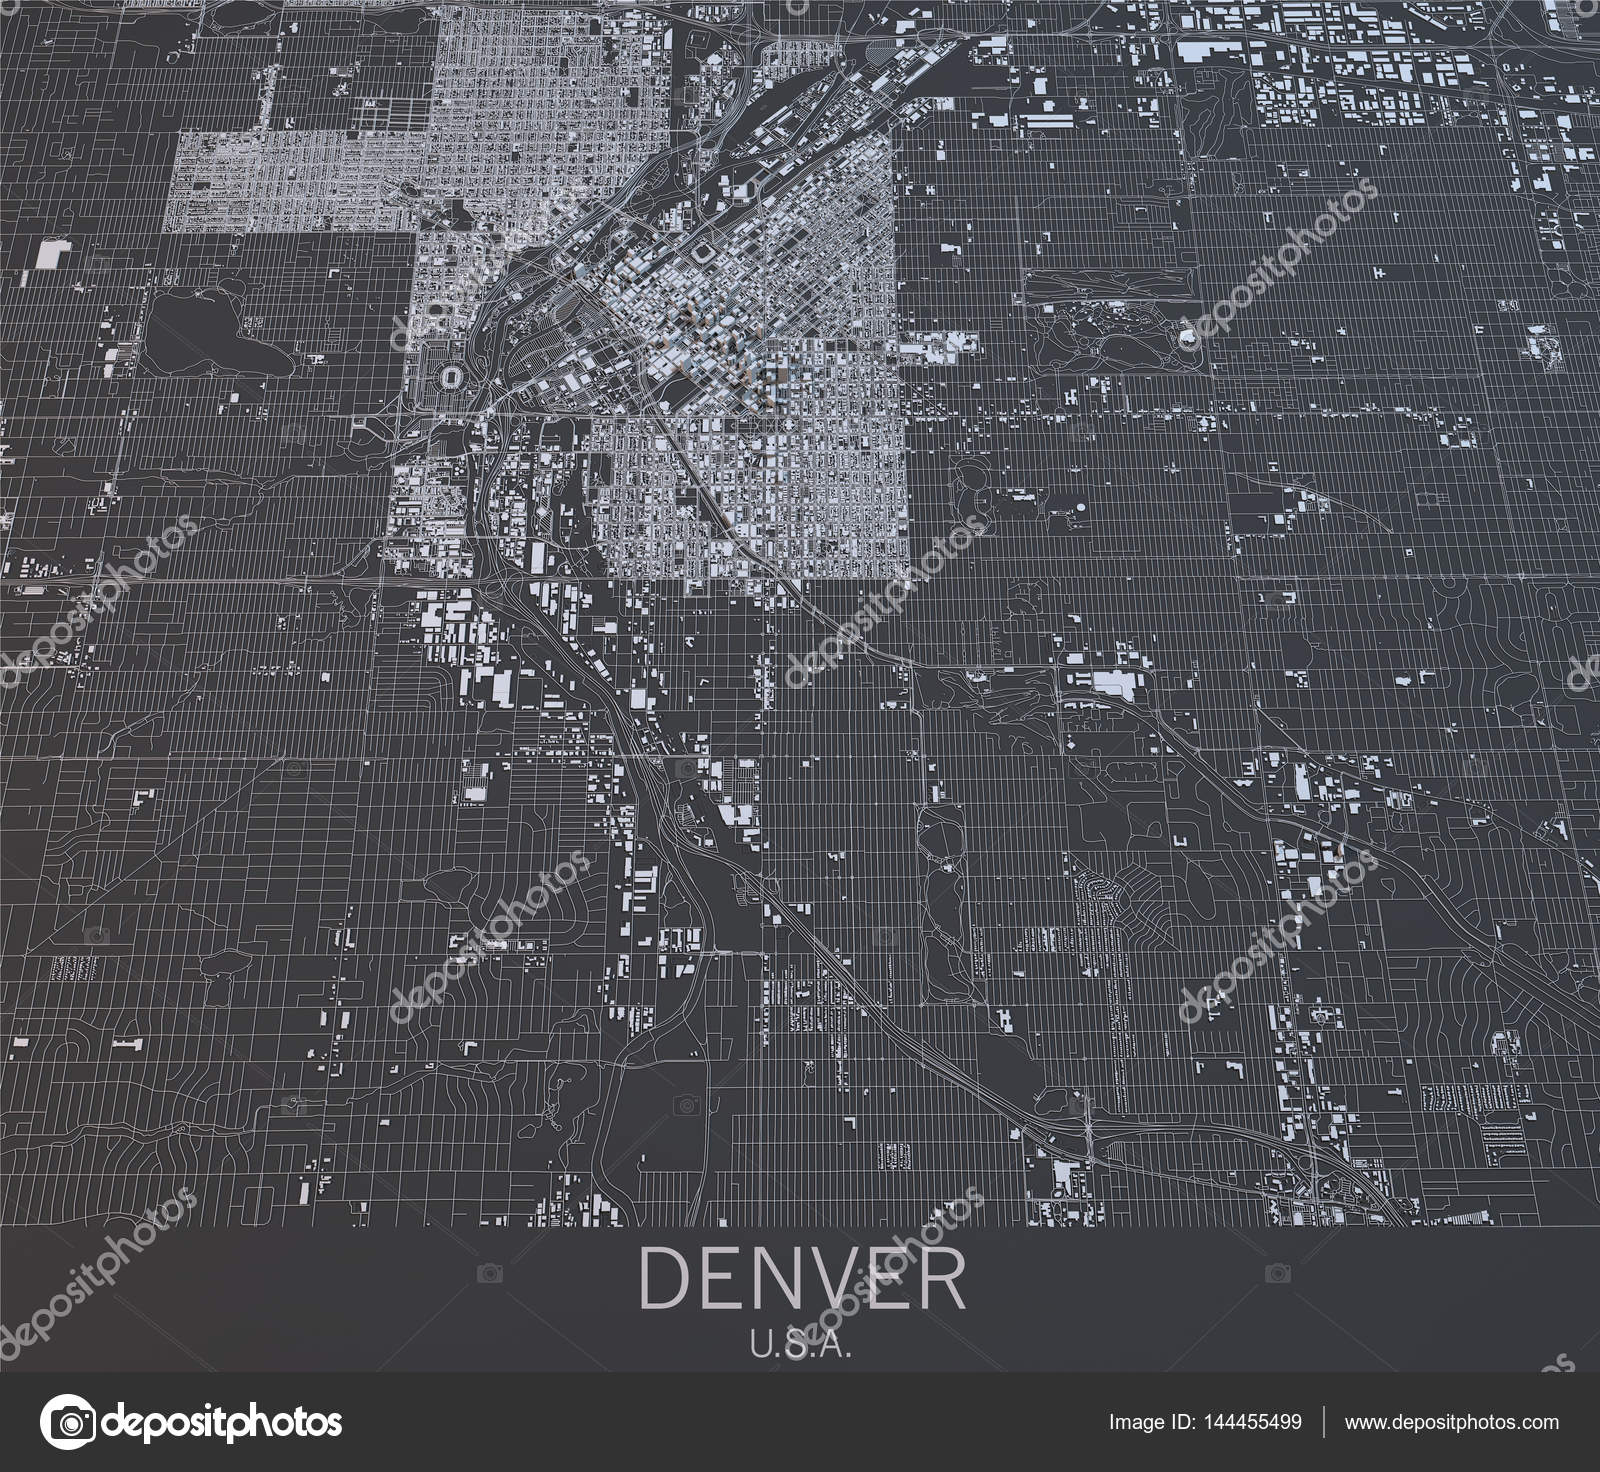 United States Map Satellite.Denver Map Satellite View United States Stock Photo C Vampy1